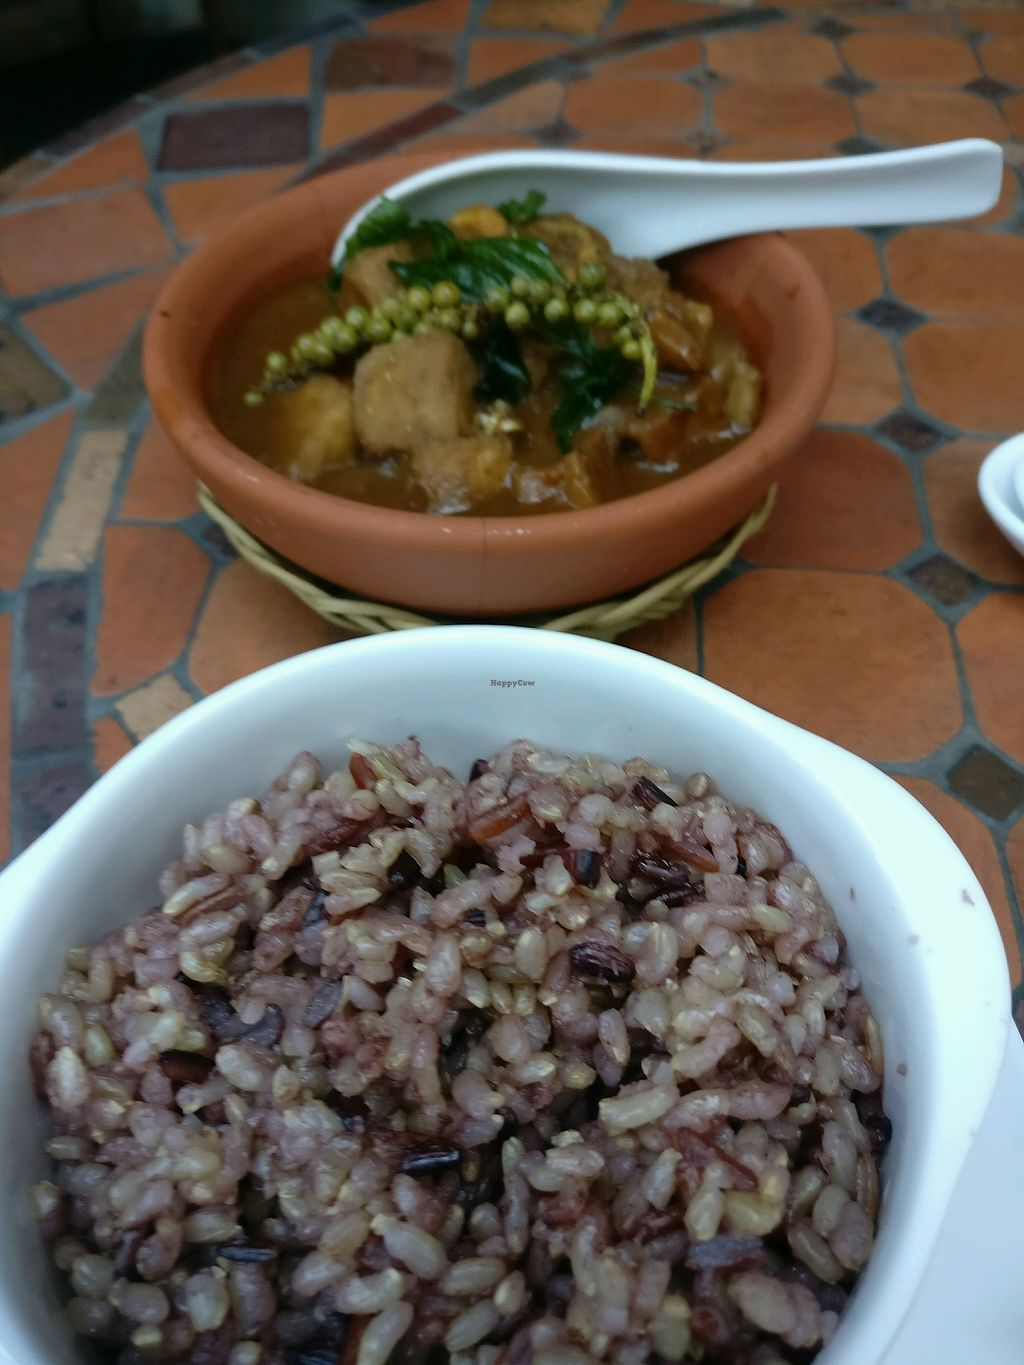 """Photo of Hum Vegetarian - District 3  by <a href=""""/members/profile/cdnvegan"""">cdnvegan</a> <br/>Taro with lemongrass and a side of brown rice <br/> February 24, 2018  - <a href='/contact/abuse/image/36320/363134'>Report</a>"""